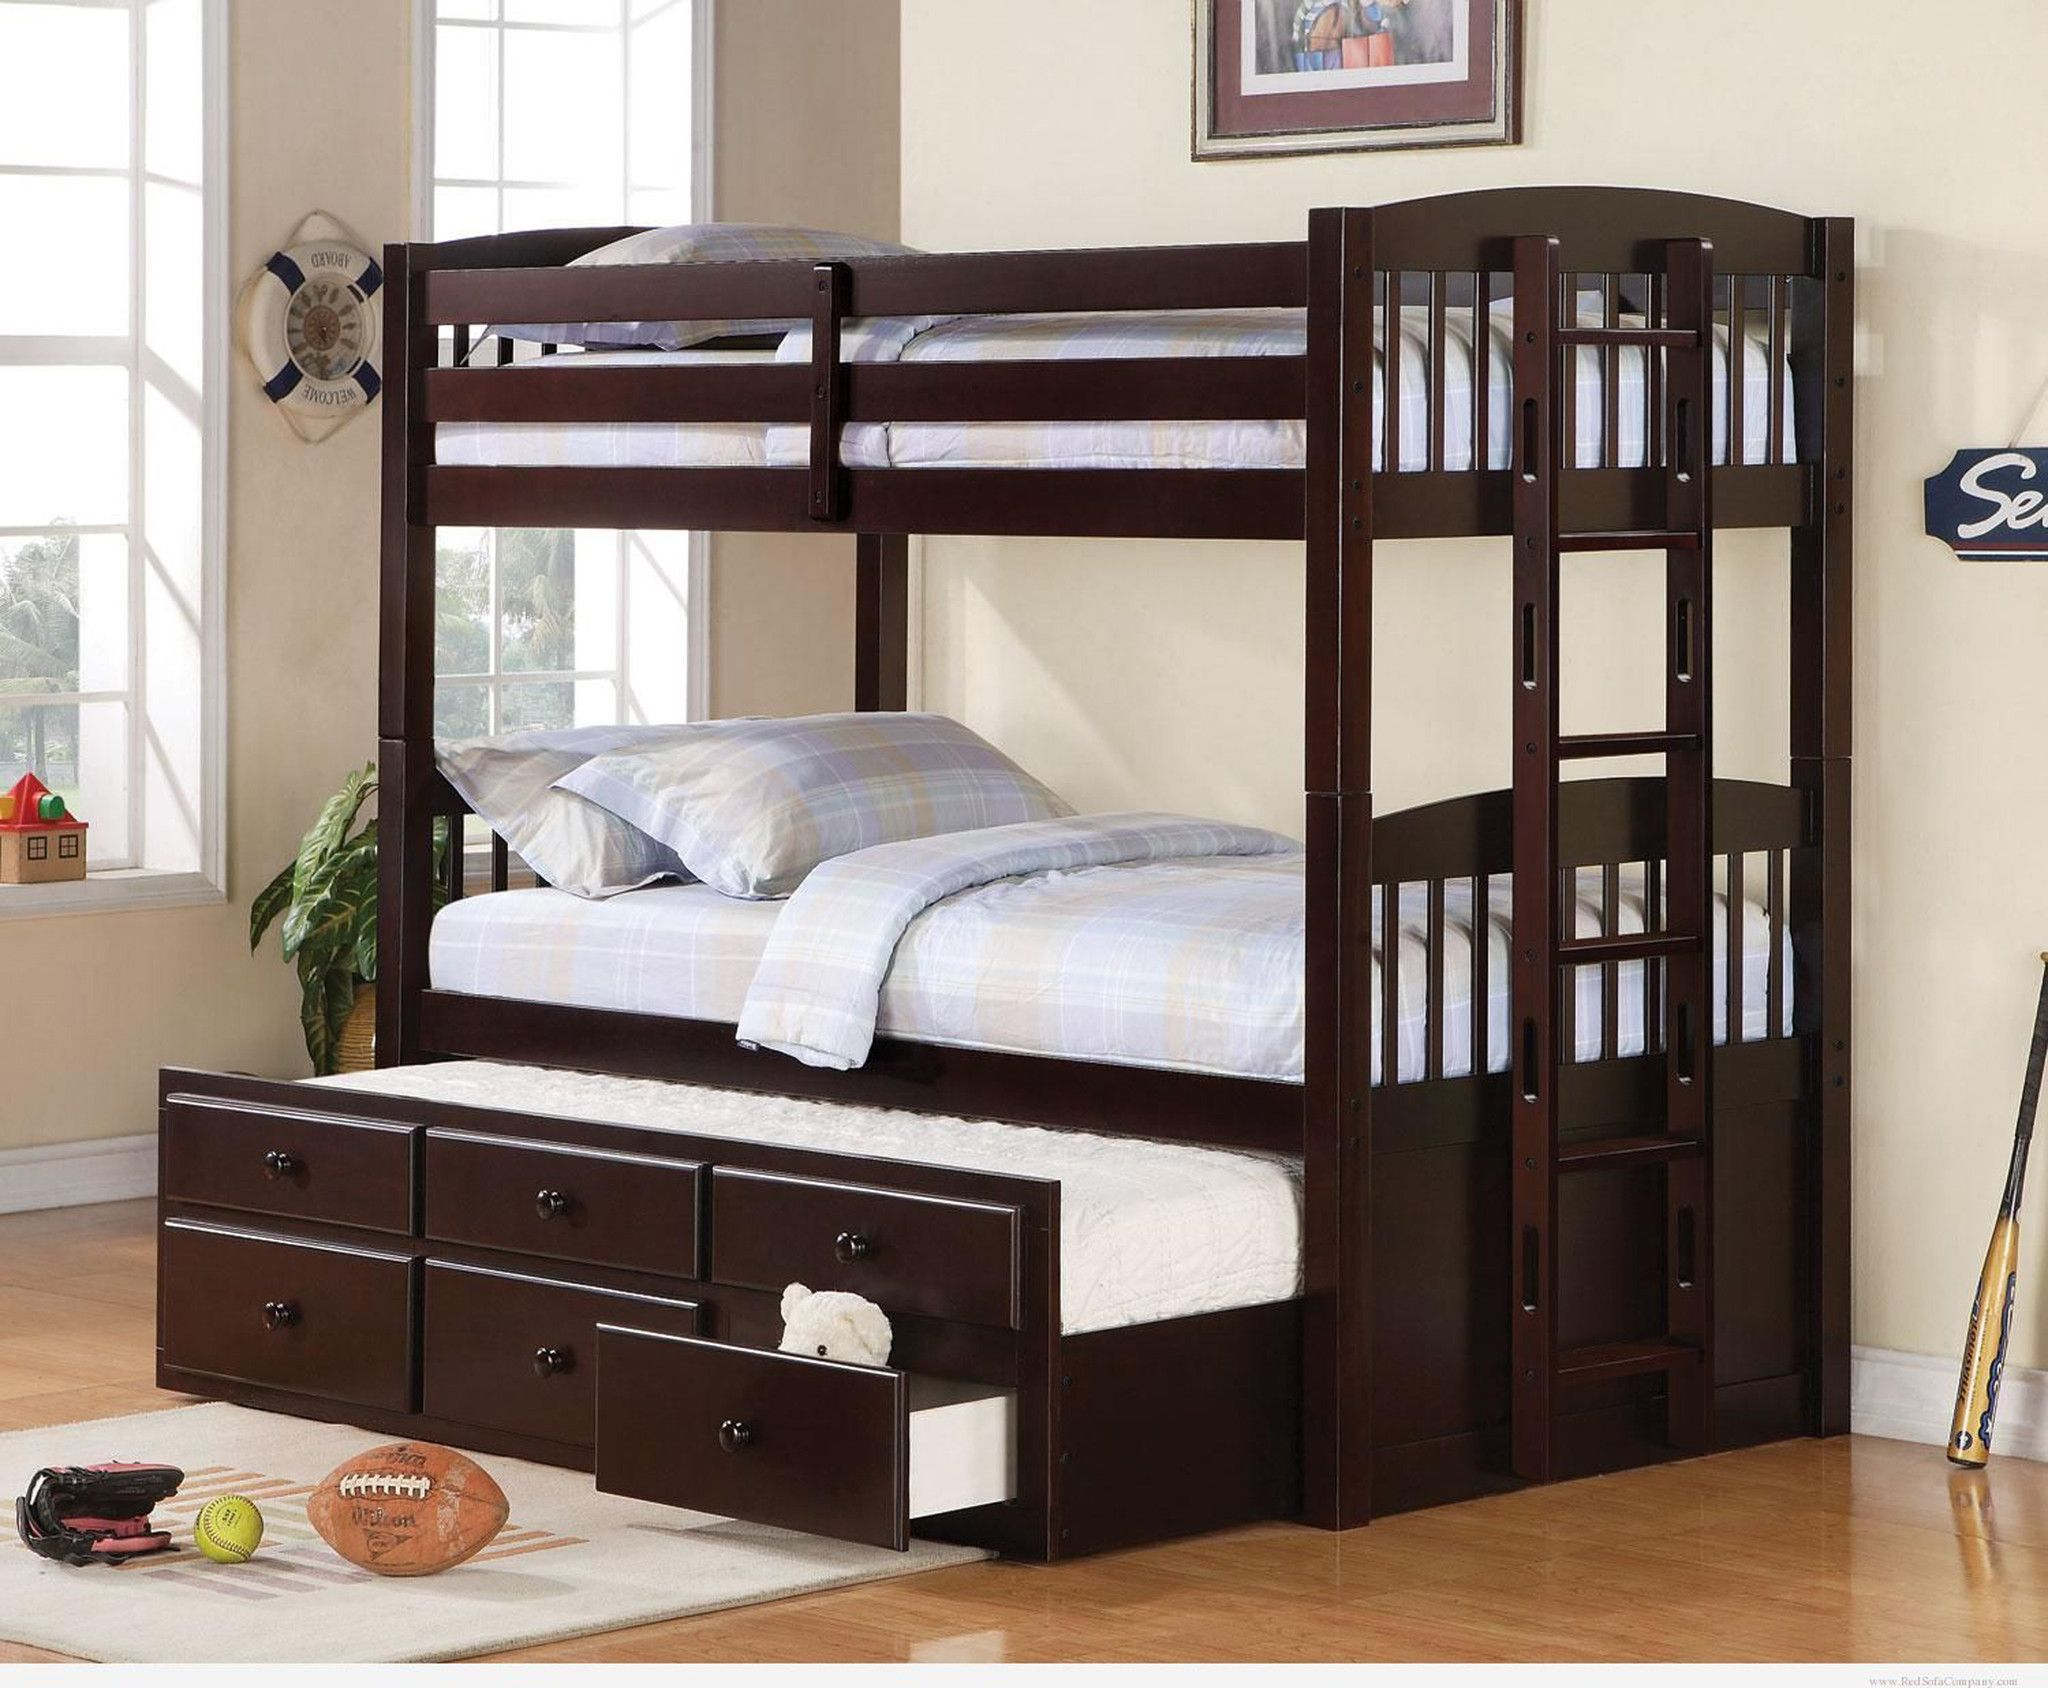 Kids Twin Over Twin Triple Bunk Bed With Trundle And Storage Bunk Bed With Trundle Twin Bunk Beds Bunk Beds